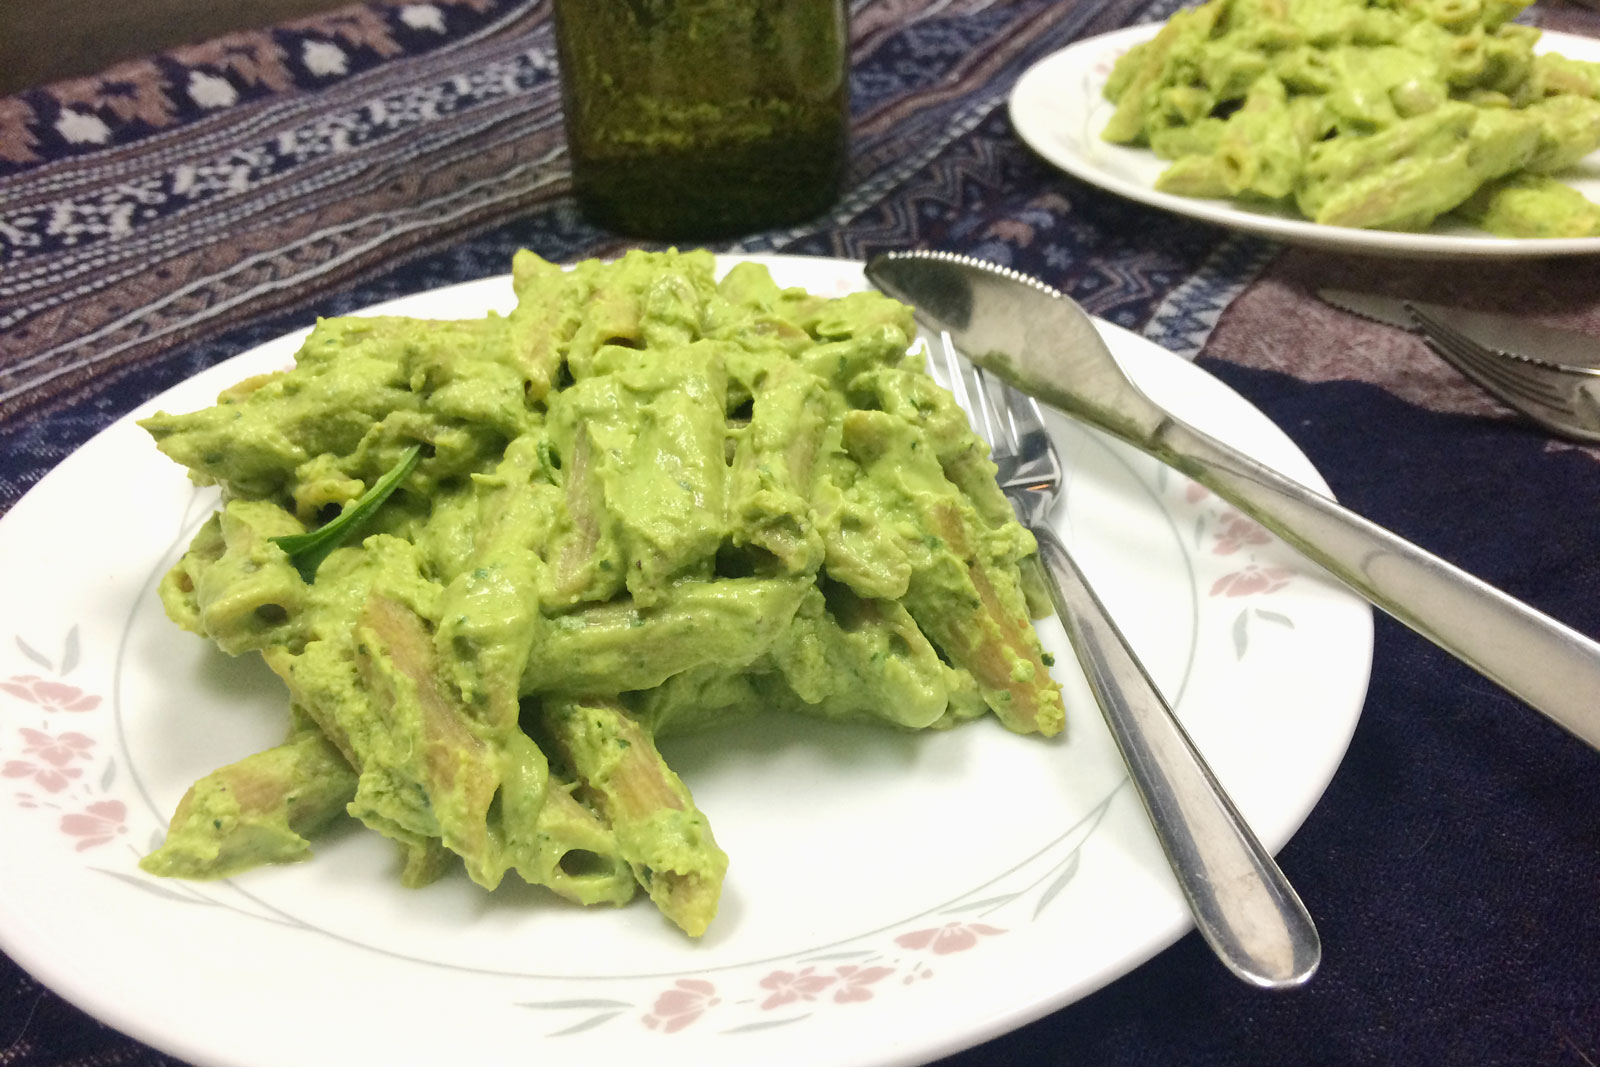 Spinach-Avocado Green Pasta